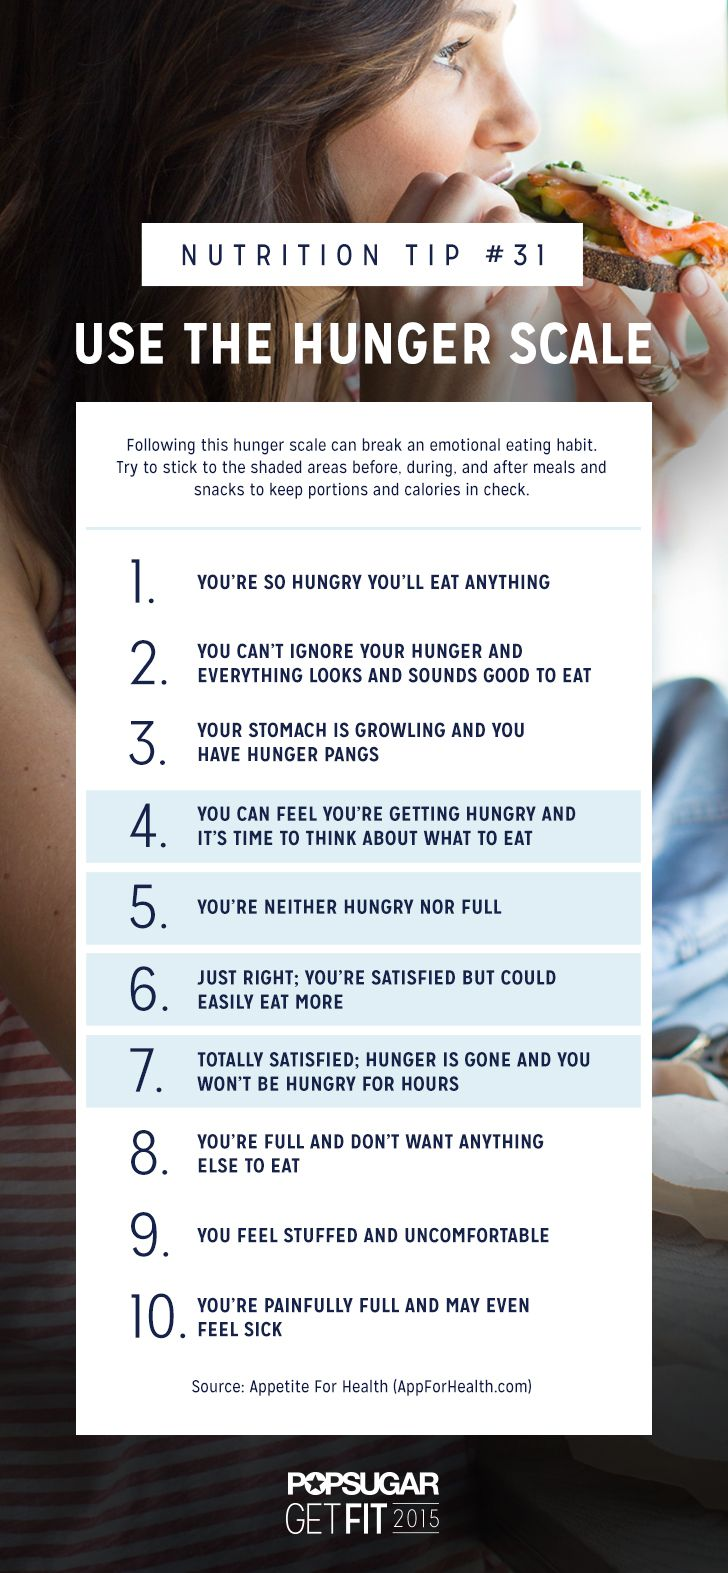 Use this hunger scale to help keep your meals and snacking in check.